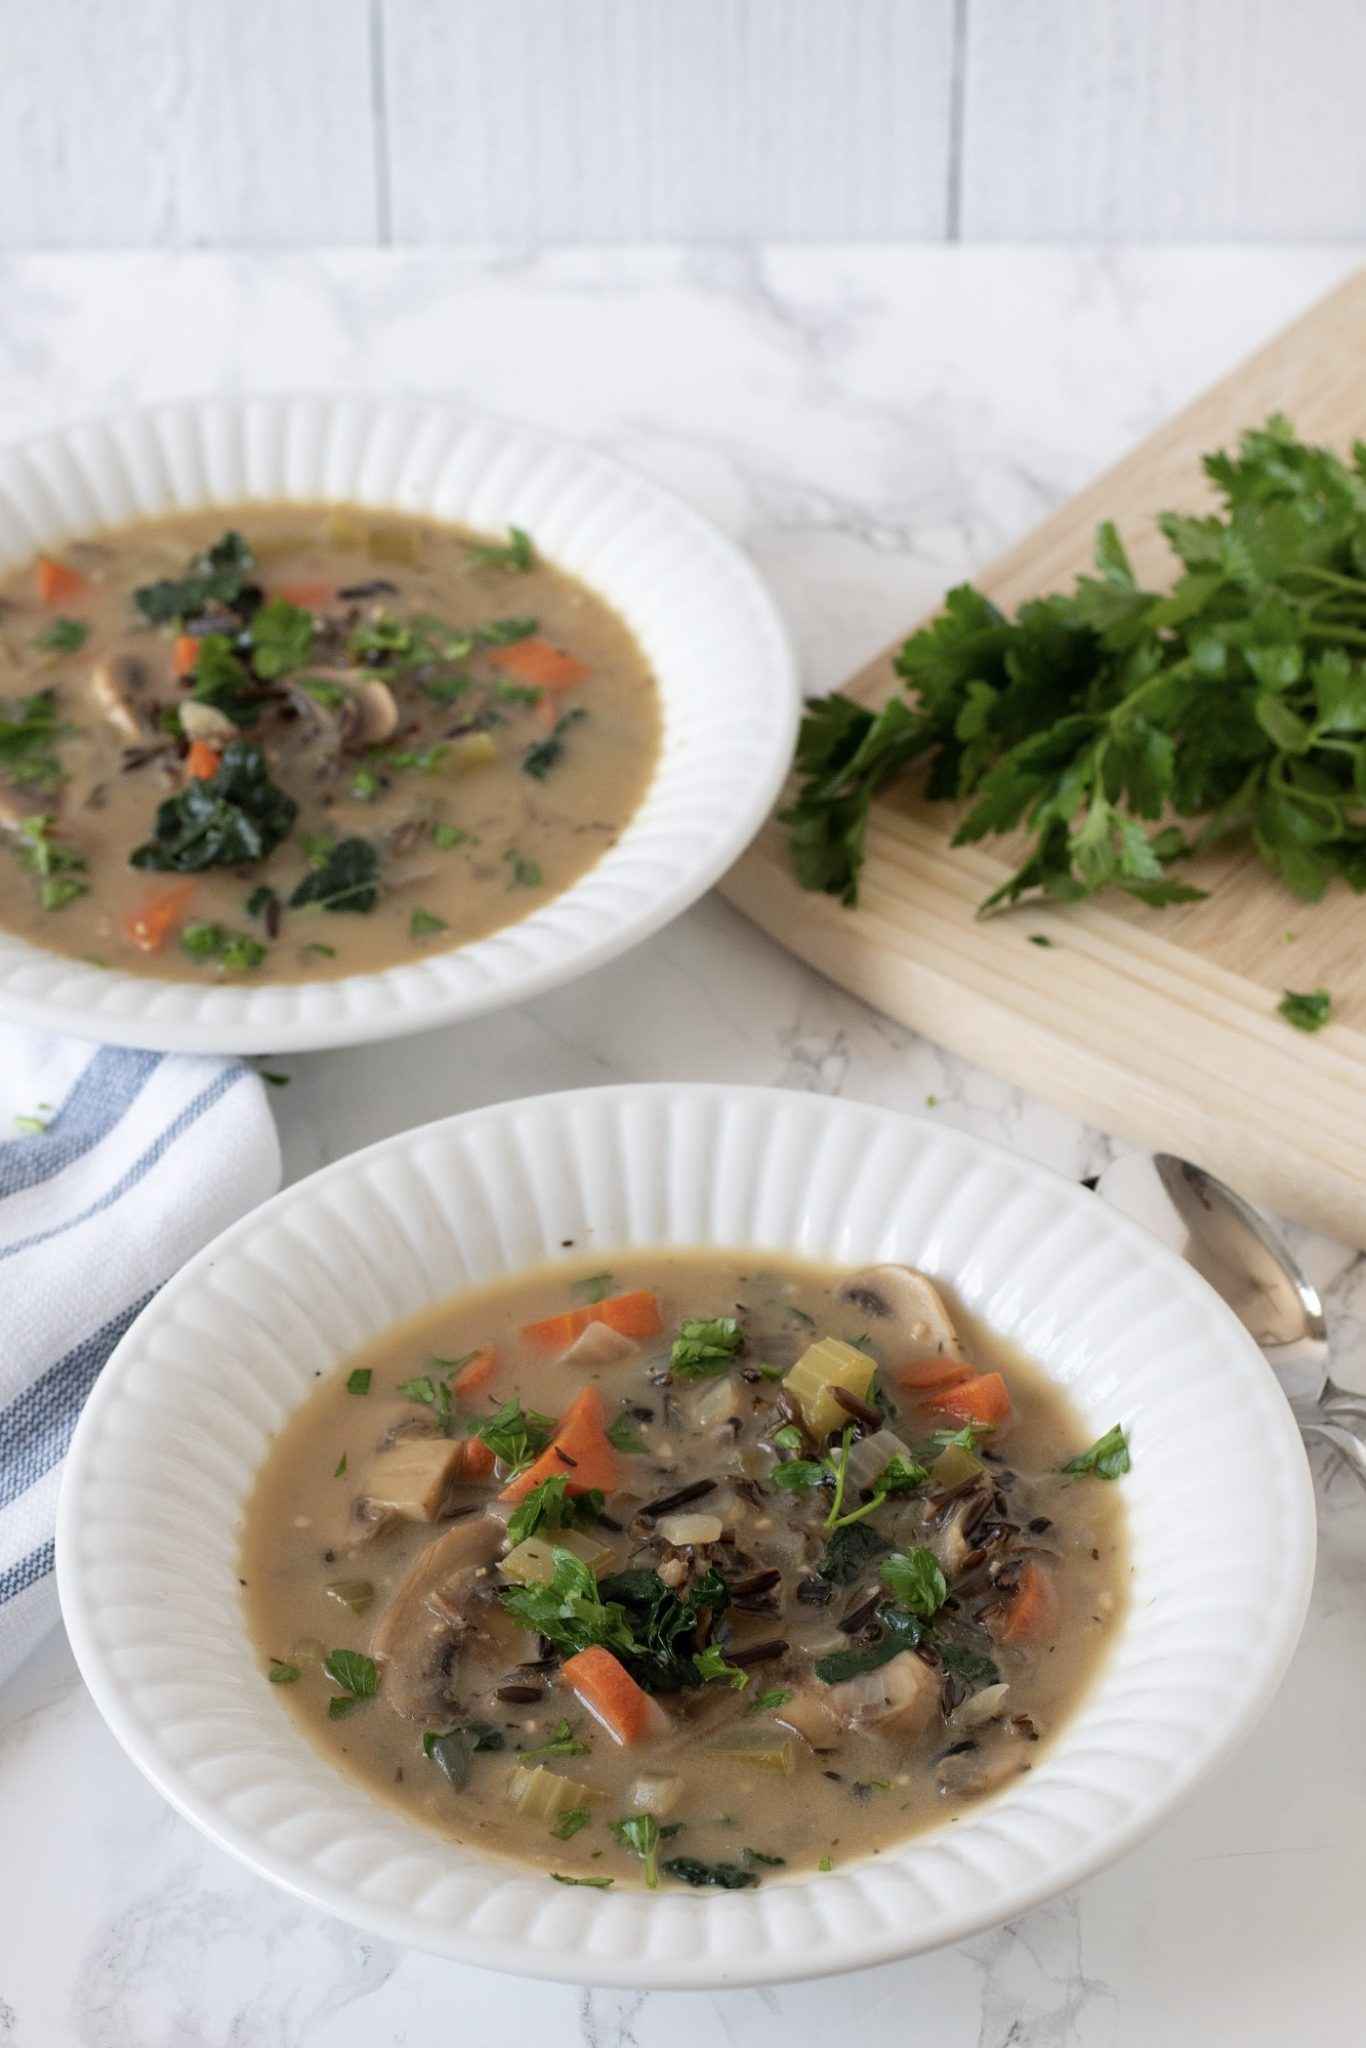 Creamy Mushroom Kale and Wild Rice Soup